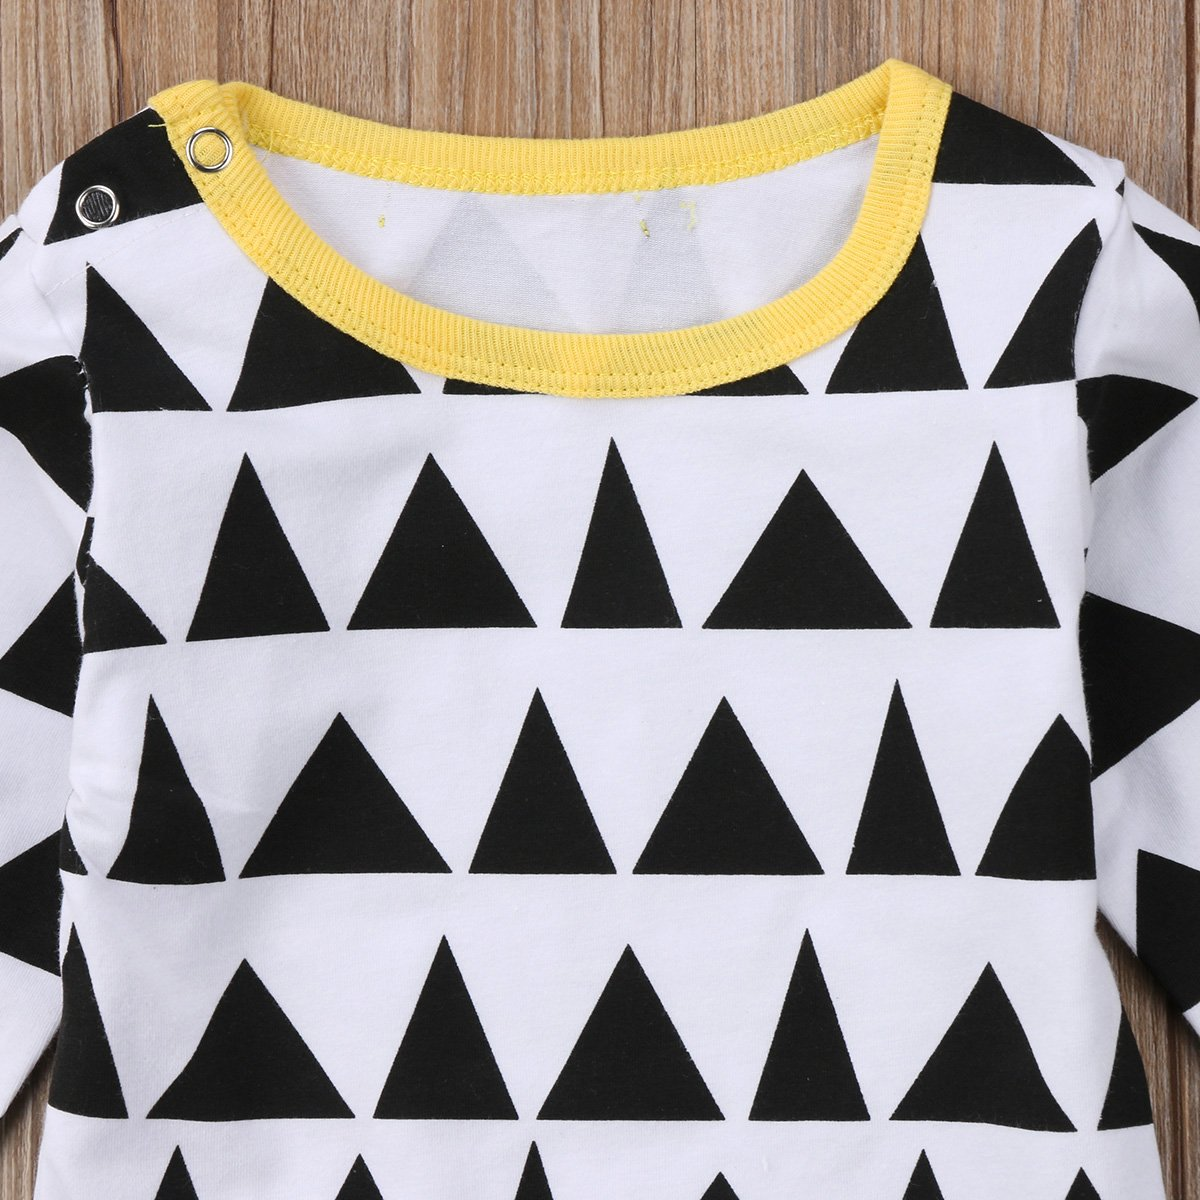 Annvivi Toddler Baby Boys Girls Cotton Romper Long Sleeve Triangles Jumpsuit